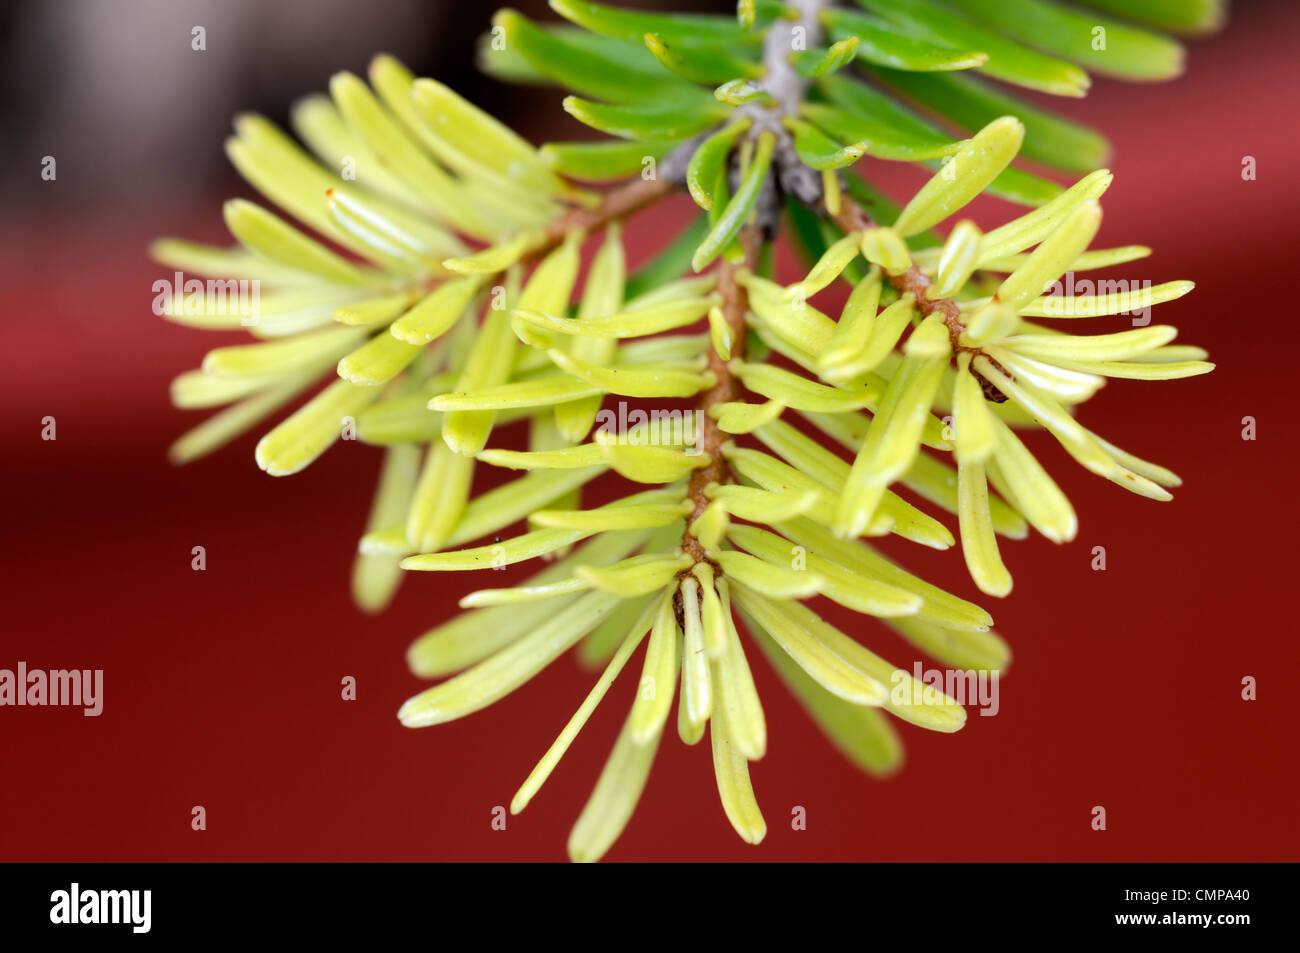 abies nordmanniana  golden spreader closeup yellow green foliage leaves needles plant portraits conifers evergreens - Stock Image